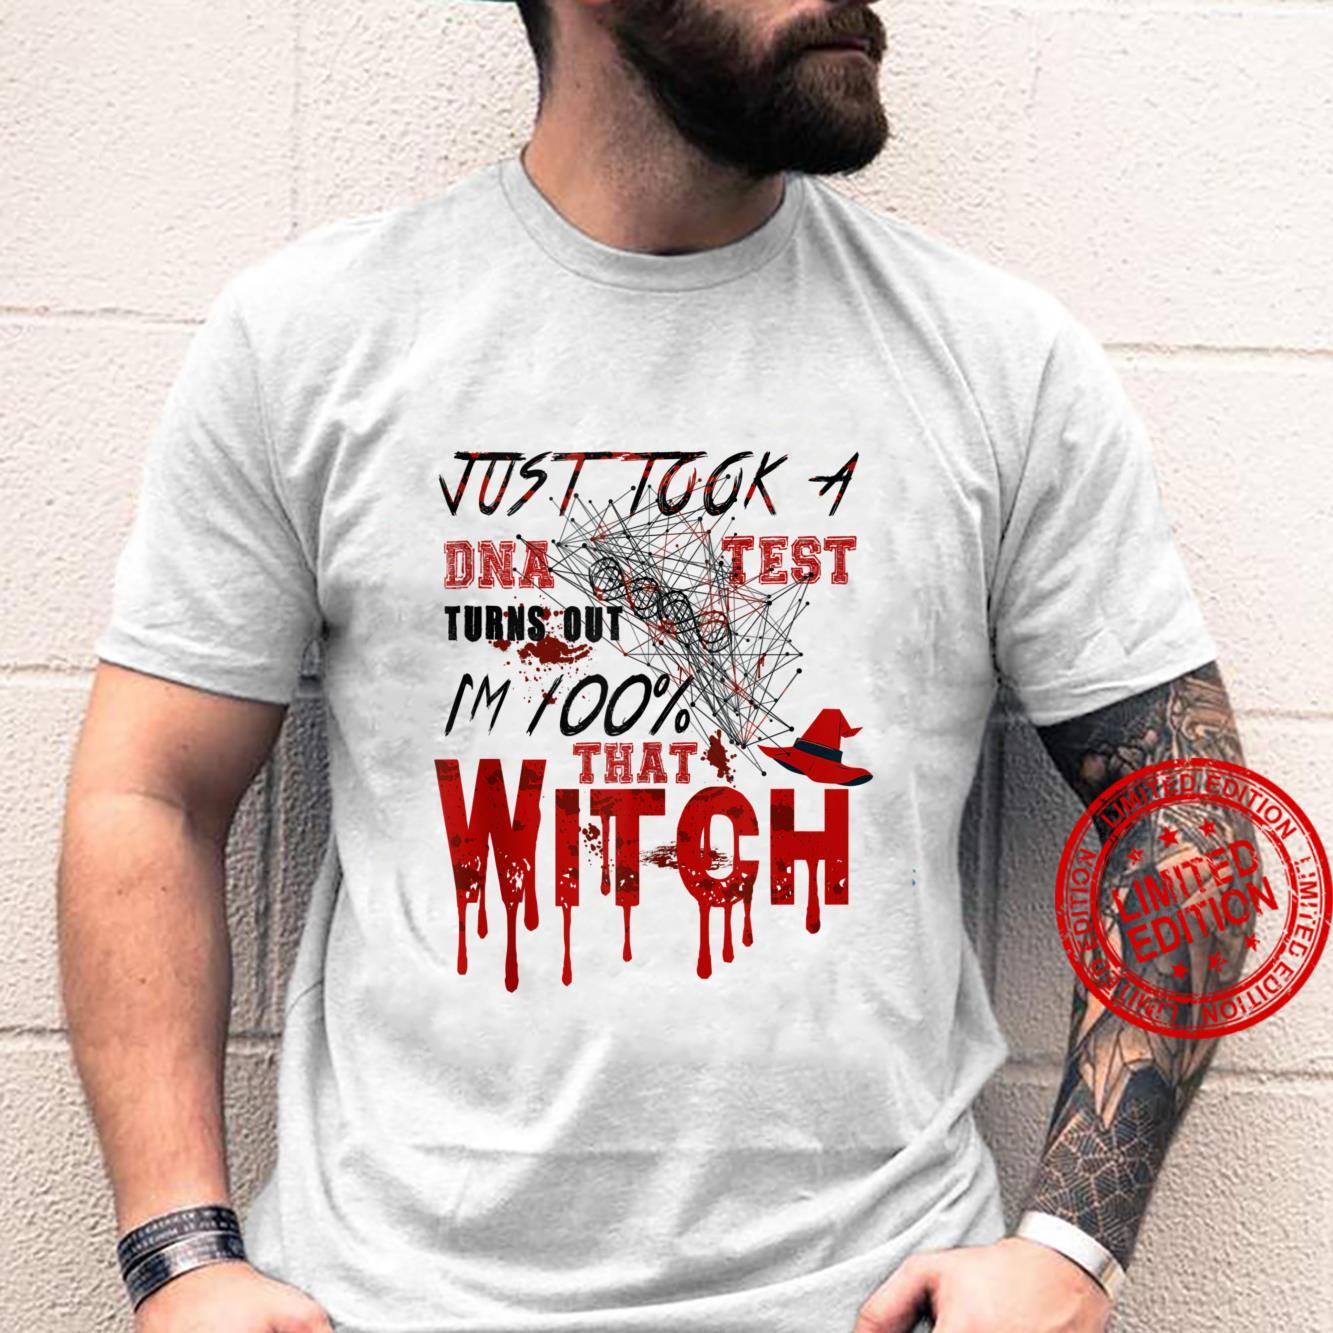 Just Took a DNA Test I'm 100 Percent That Witch October 31st Shirt